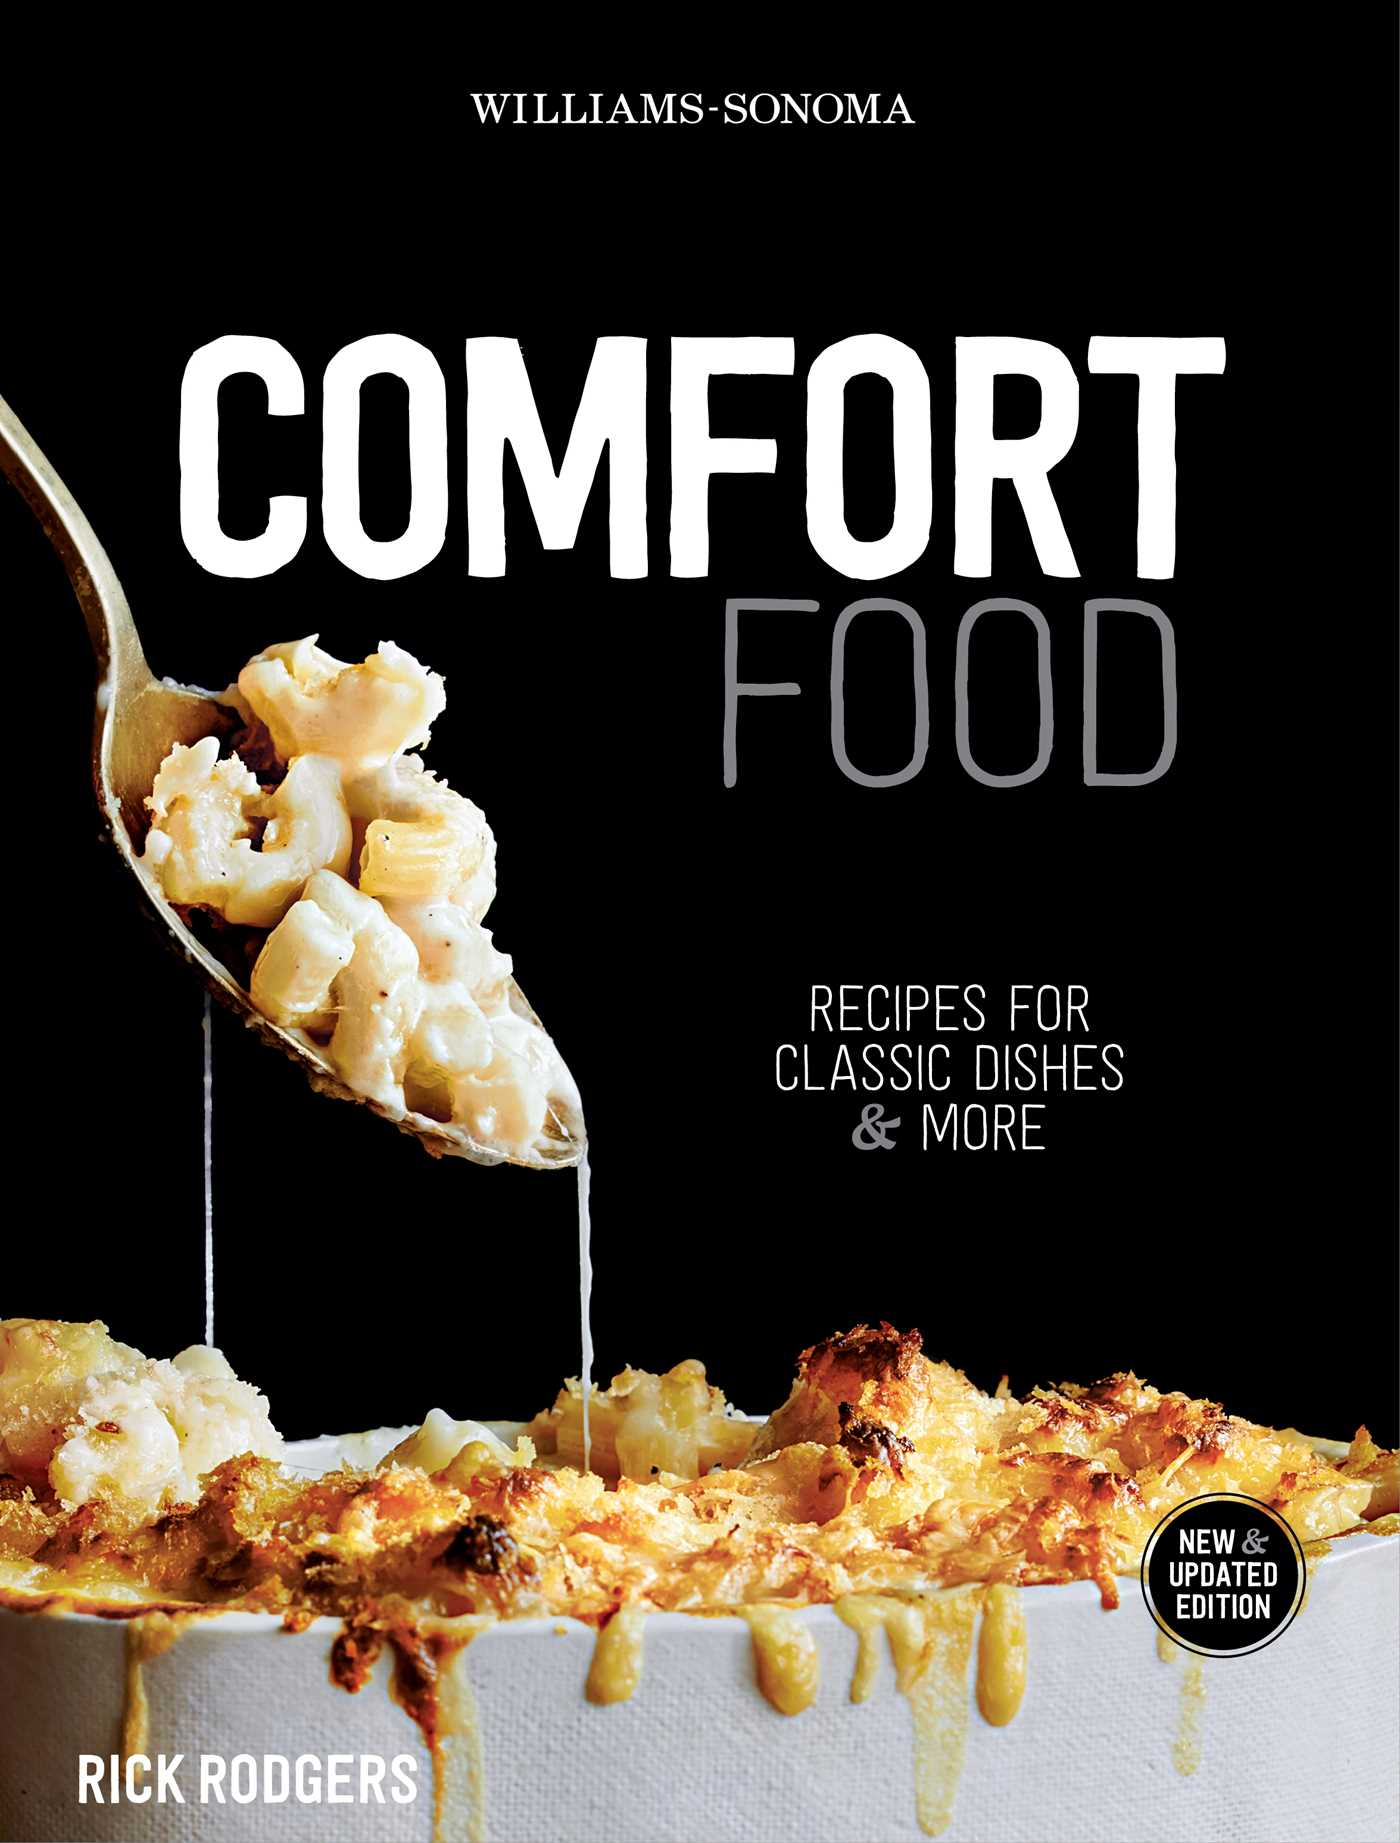 Comfort food williams sonoma book by rick rodgers official book cover image jpg comfort food williams sonoma forumfinder Choice Image